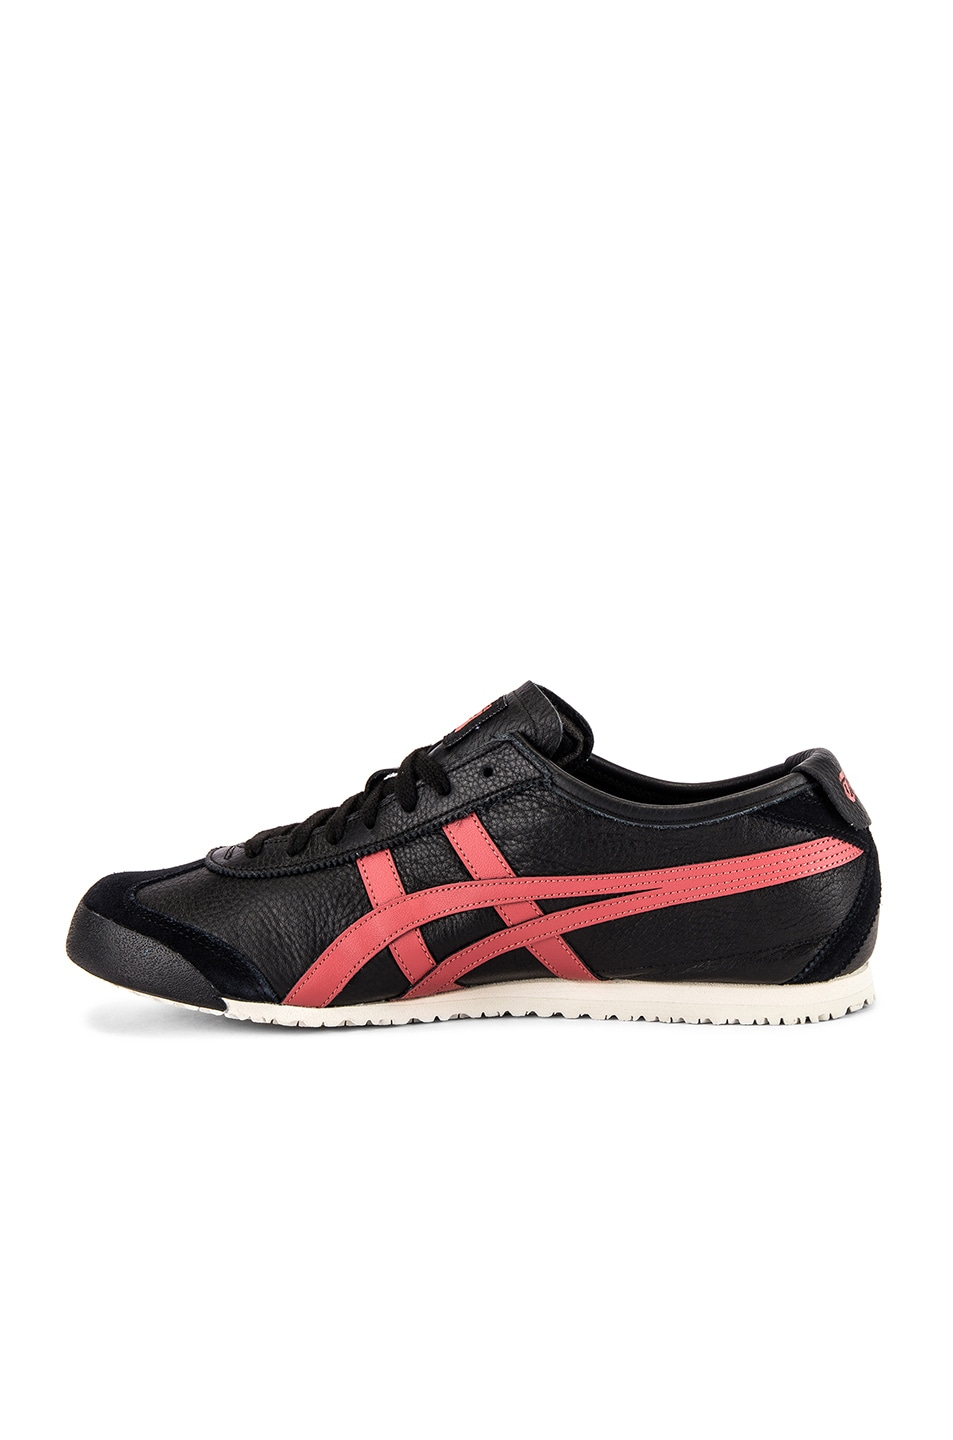 Image 5 of Onitsuka Tiger Mexico 66 in Black & Burnt Red